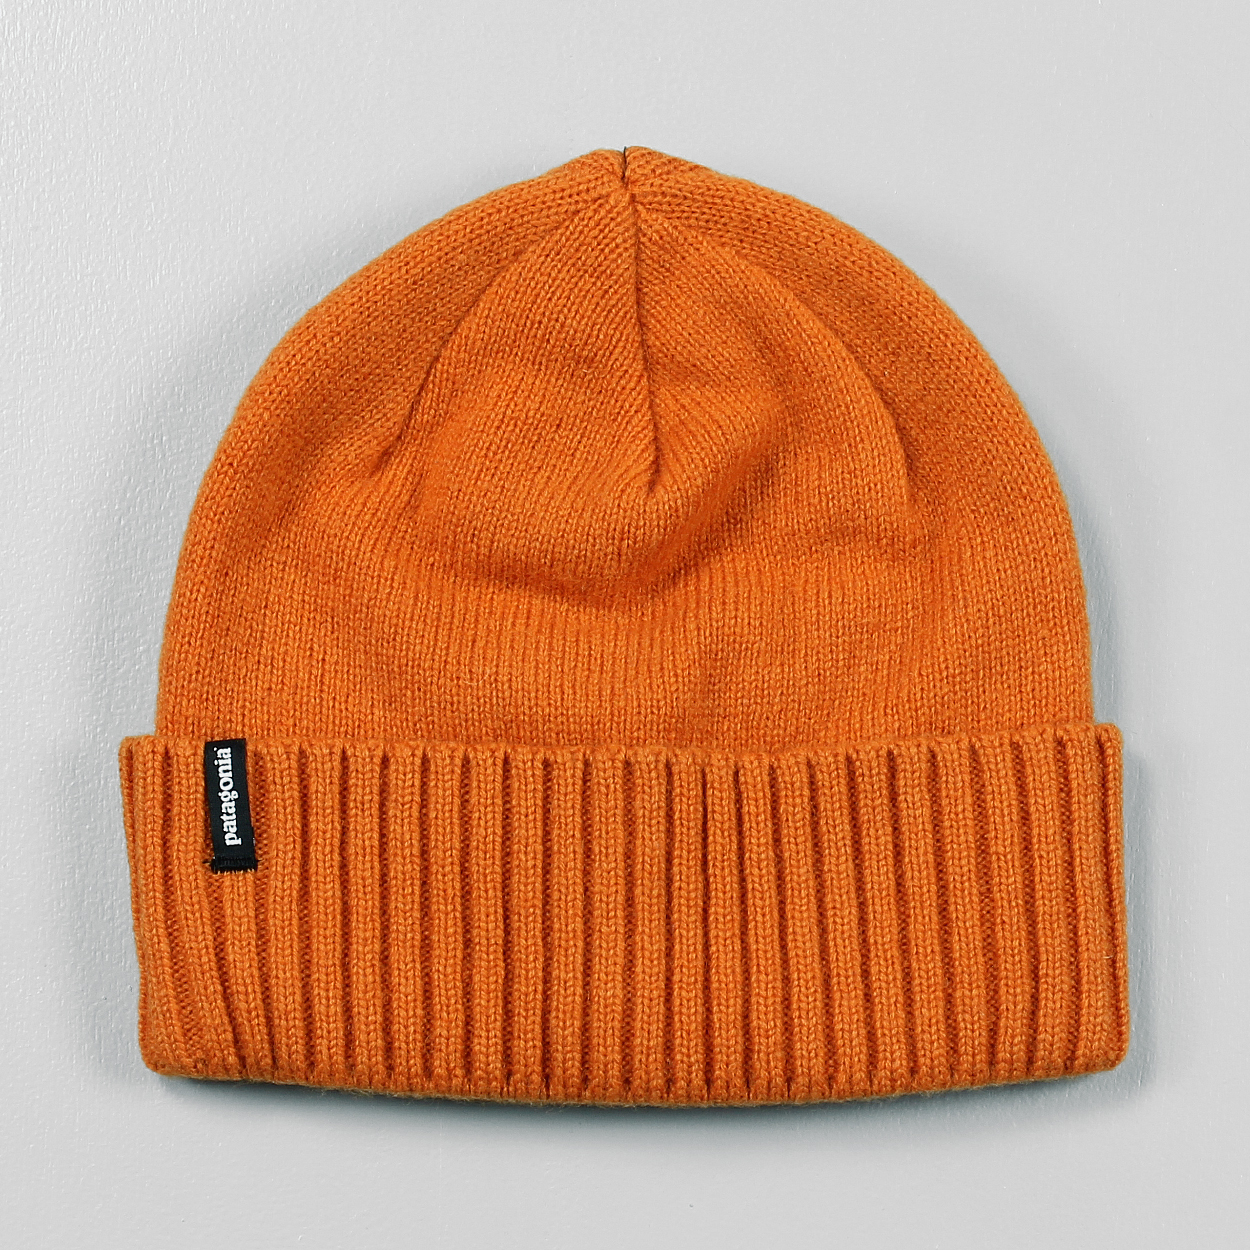 9e48ec25a14 Patagonia Mens Brodeo Beanie Campfire Orange Thick Knitted Hat £21.00